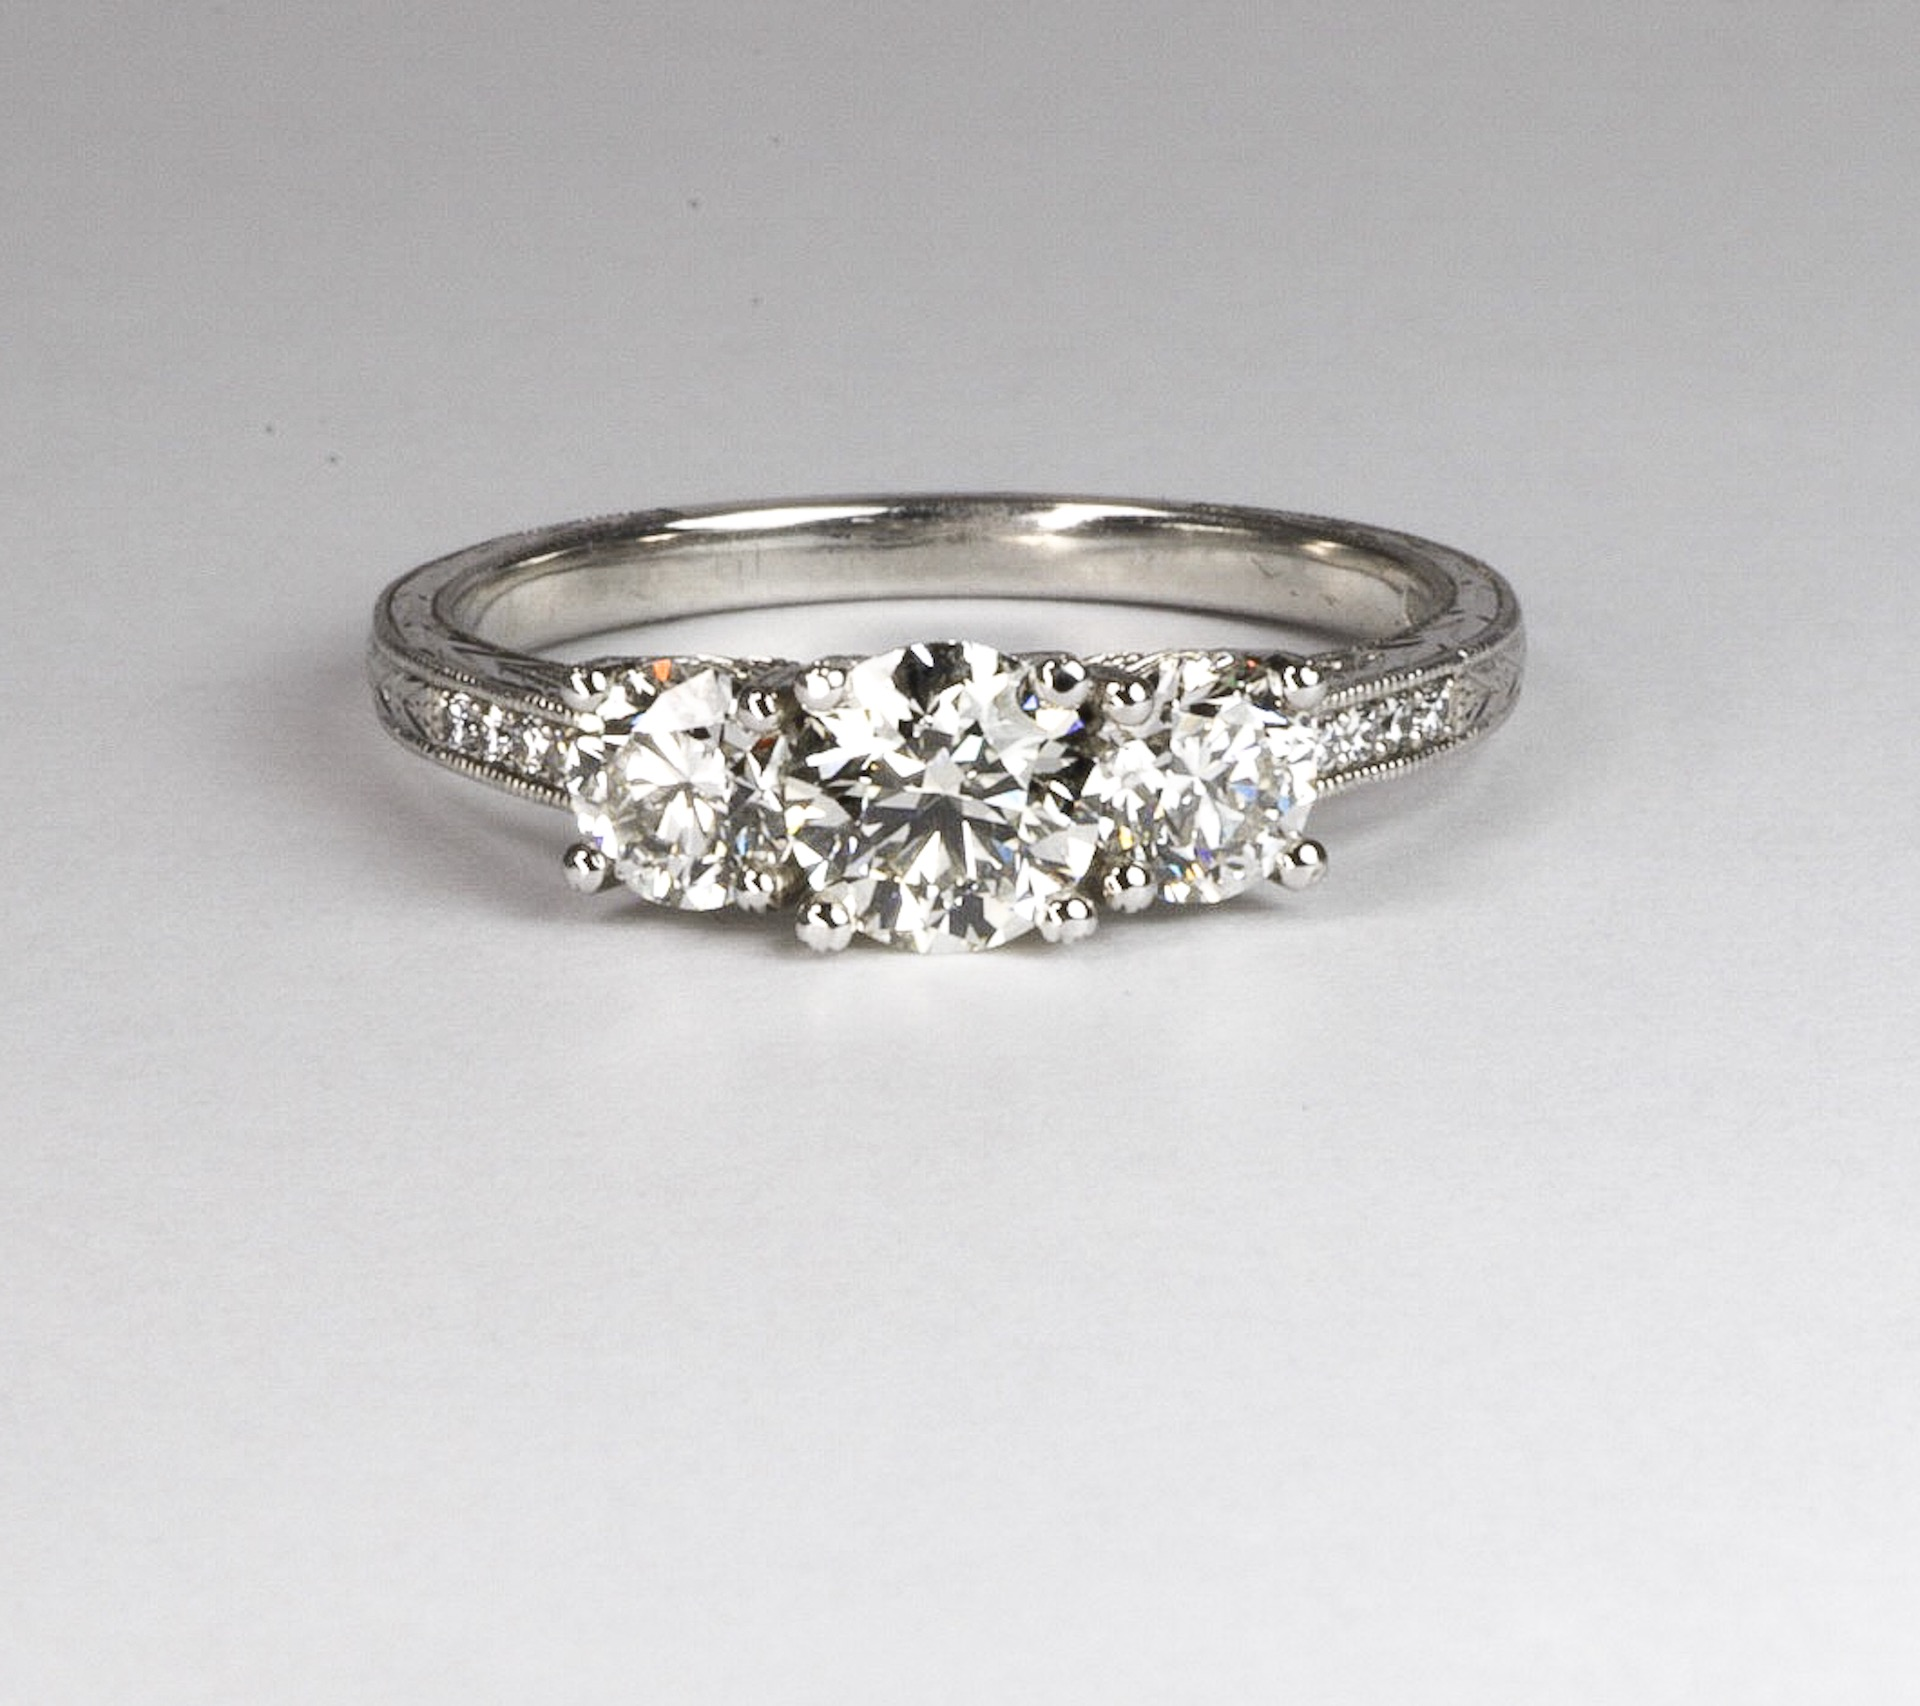 Copy of Platinum mounted modern style diamond three stone ring with grain set diamond set shoulders.   Made in Chichester, England.